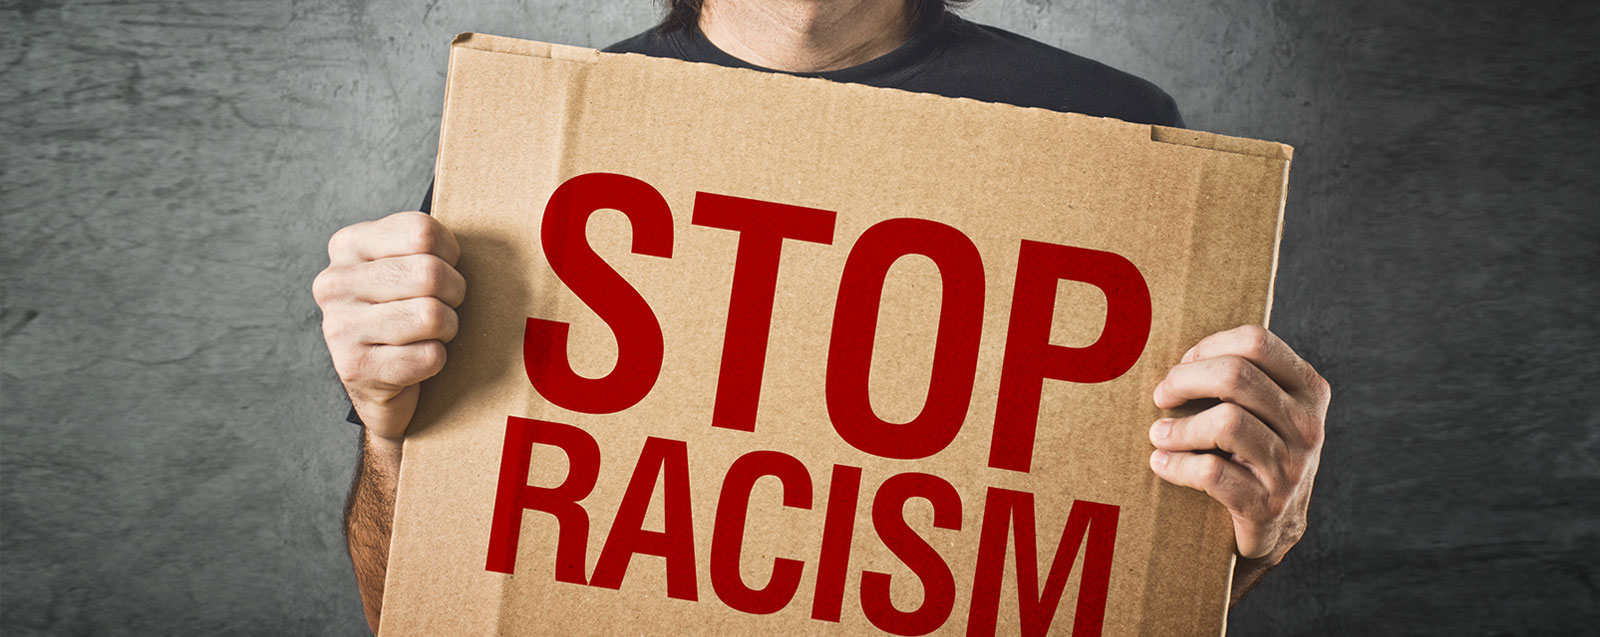 stop racism I think we should stop racism, because we are all god's creation if you think we should stop, holla at me.